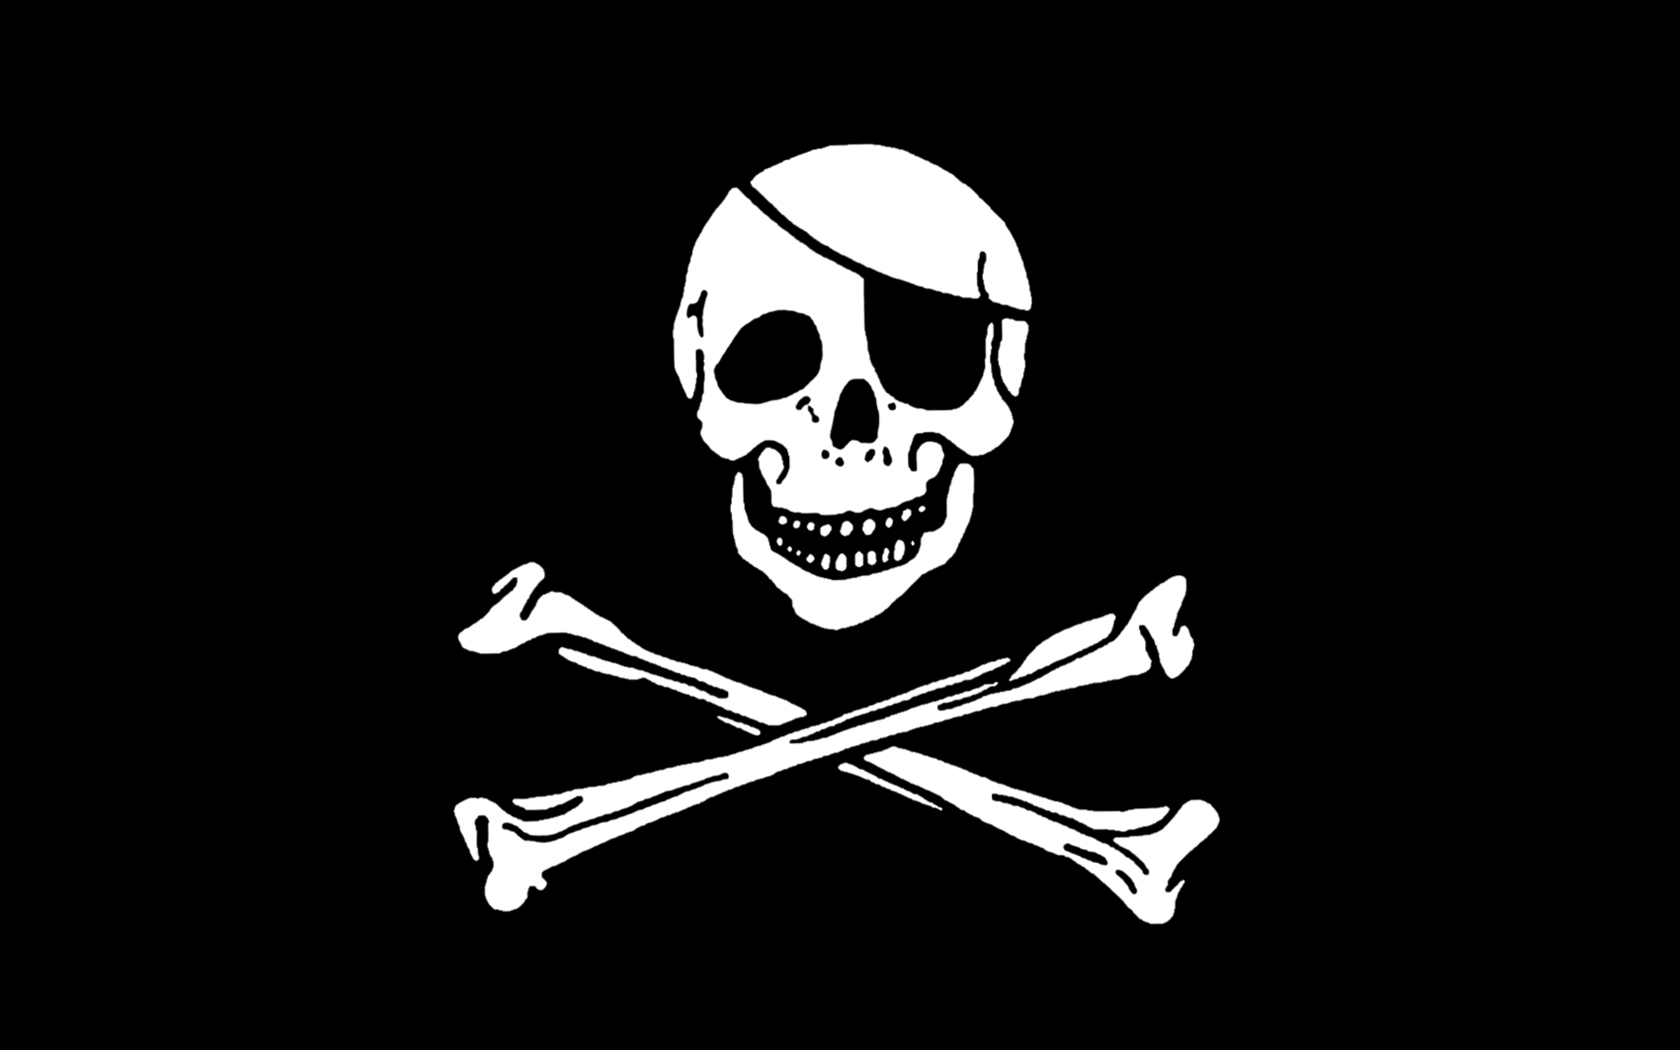 Kenny Chesney Pirate Flag Wallpaper